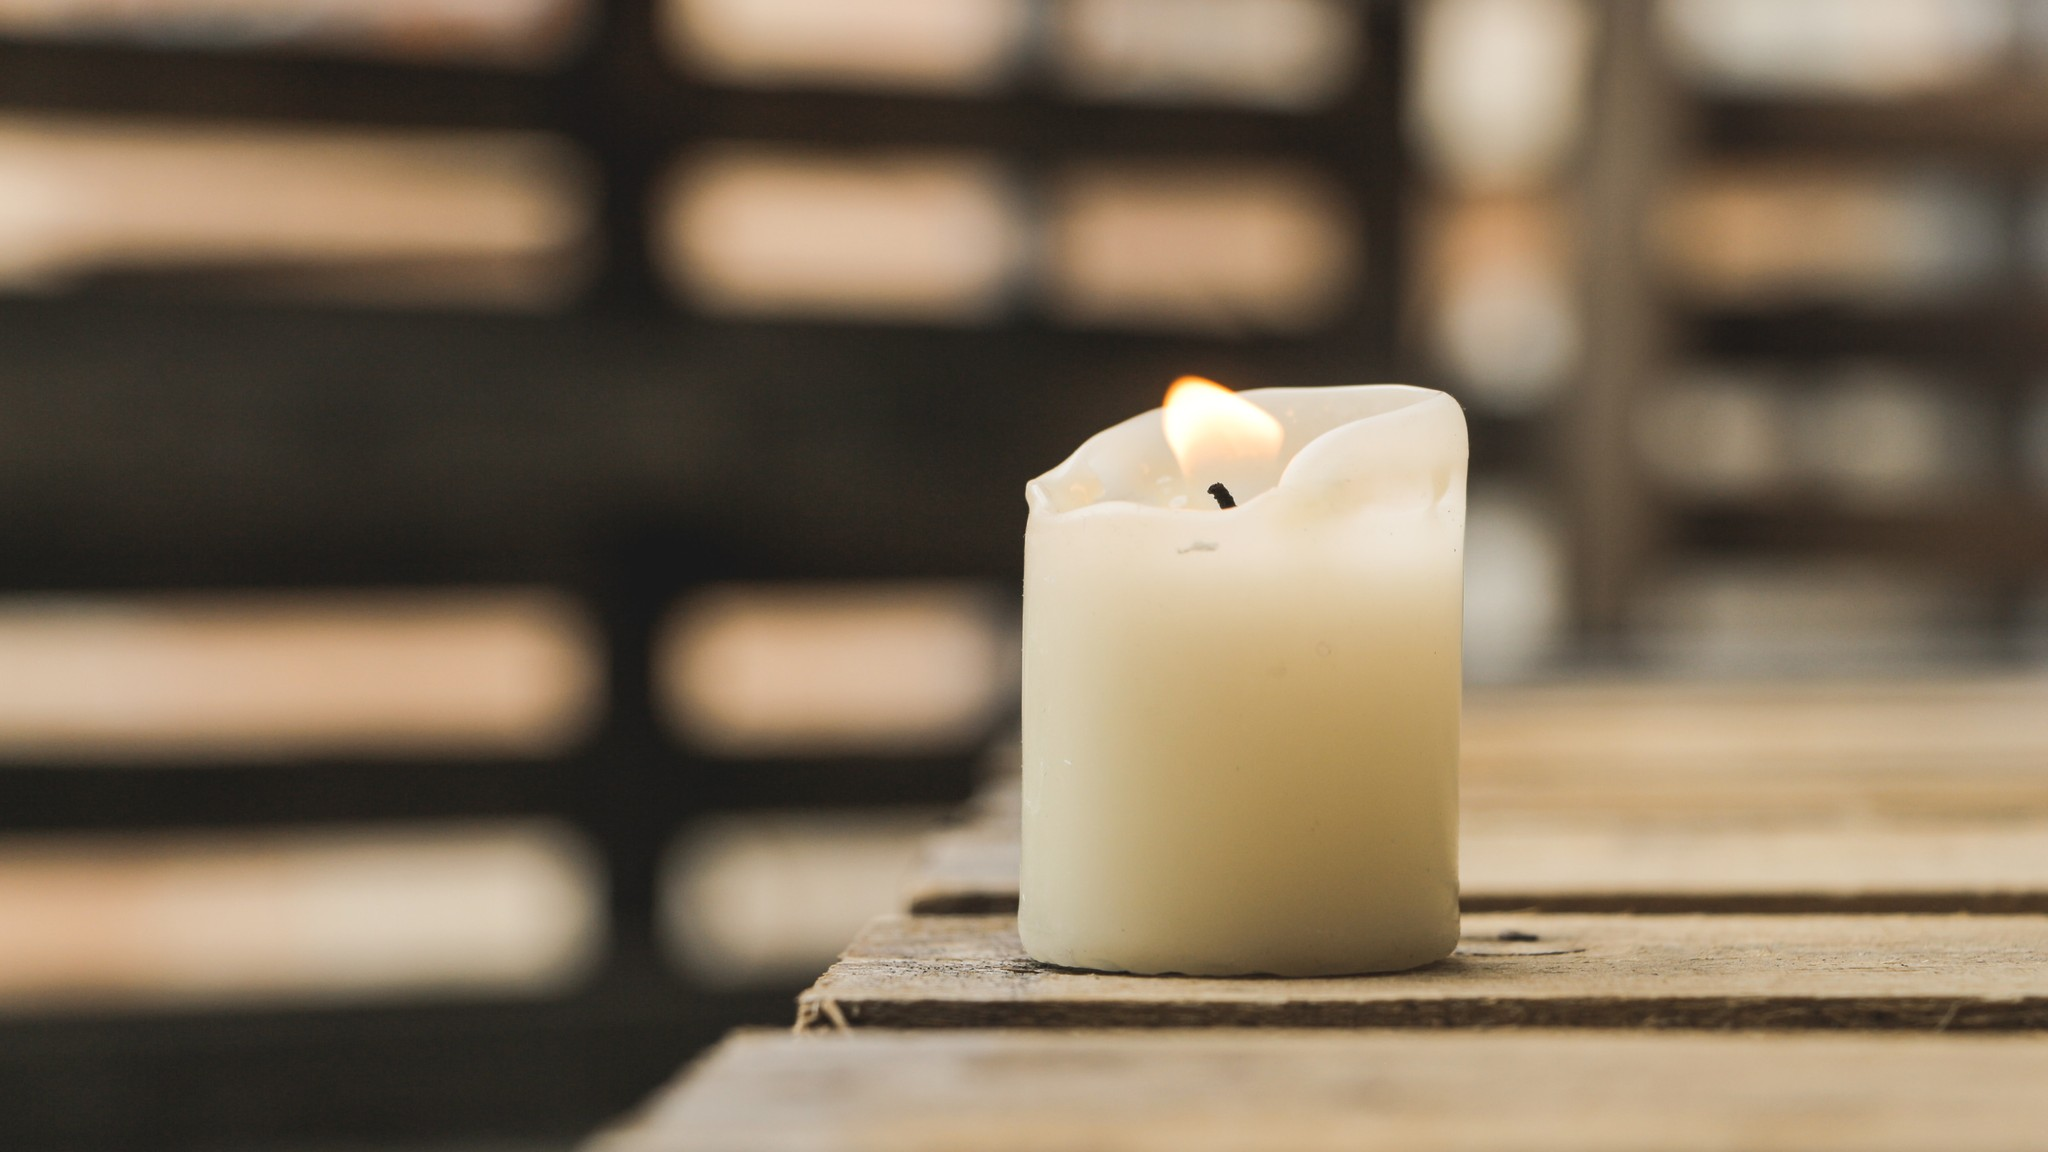 white lit pillar candle sits on wooden boards with blurred background